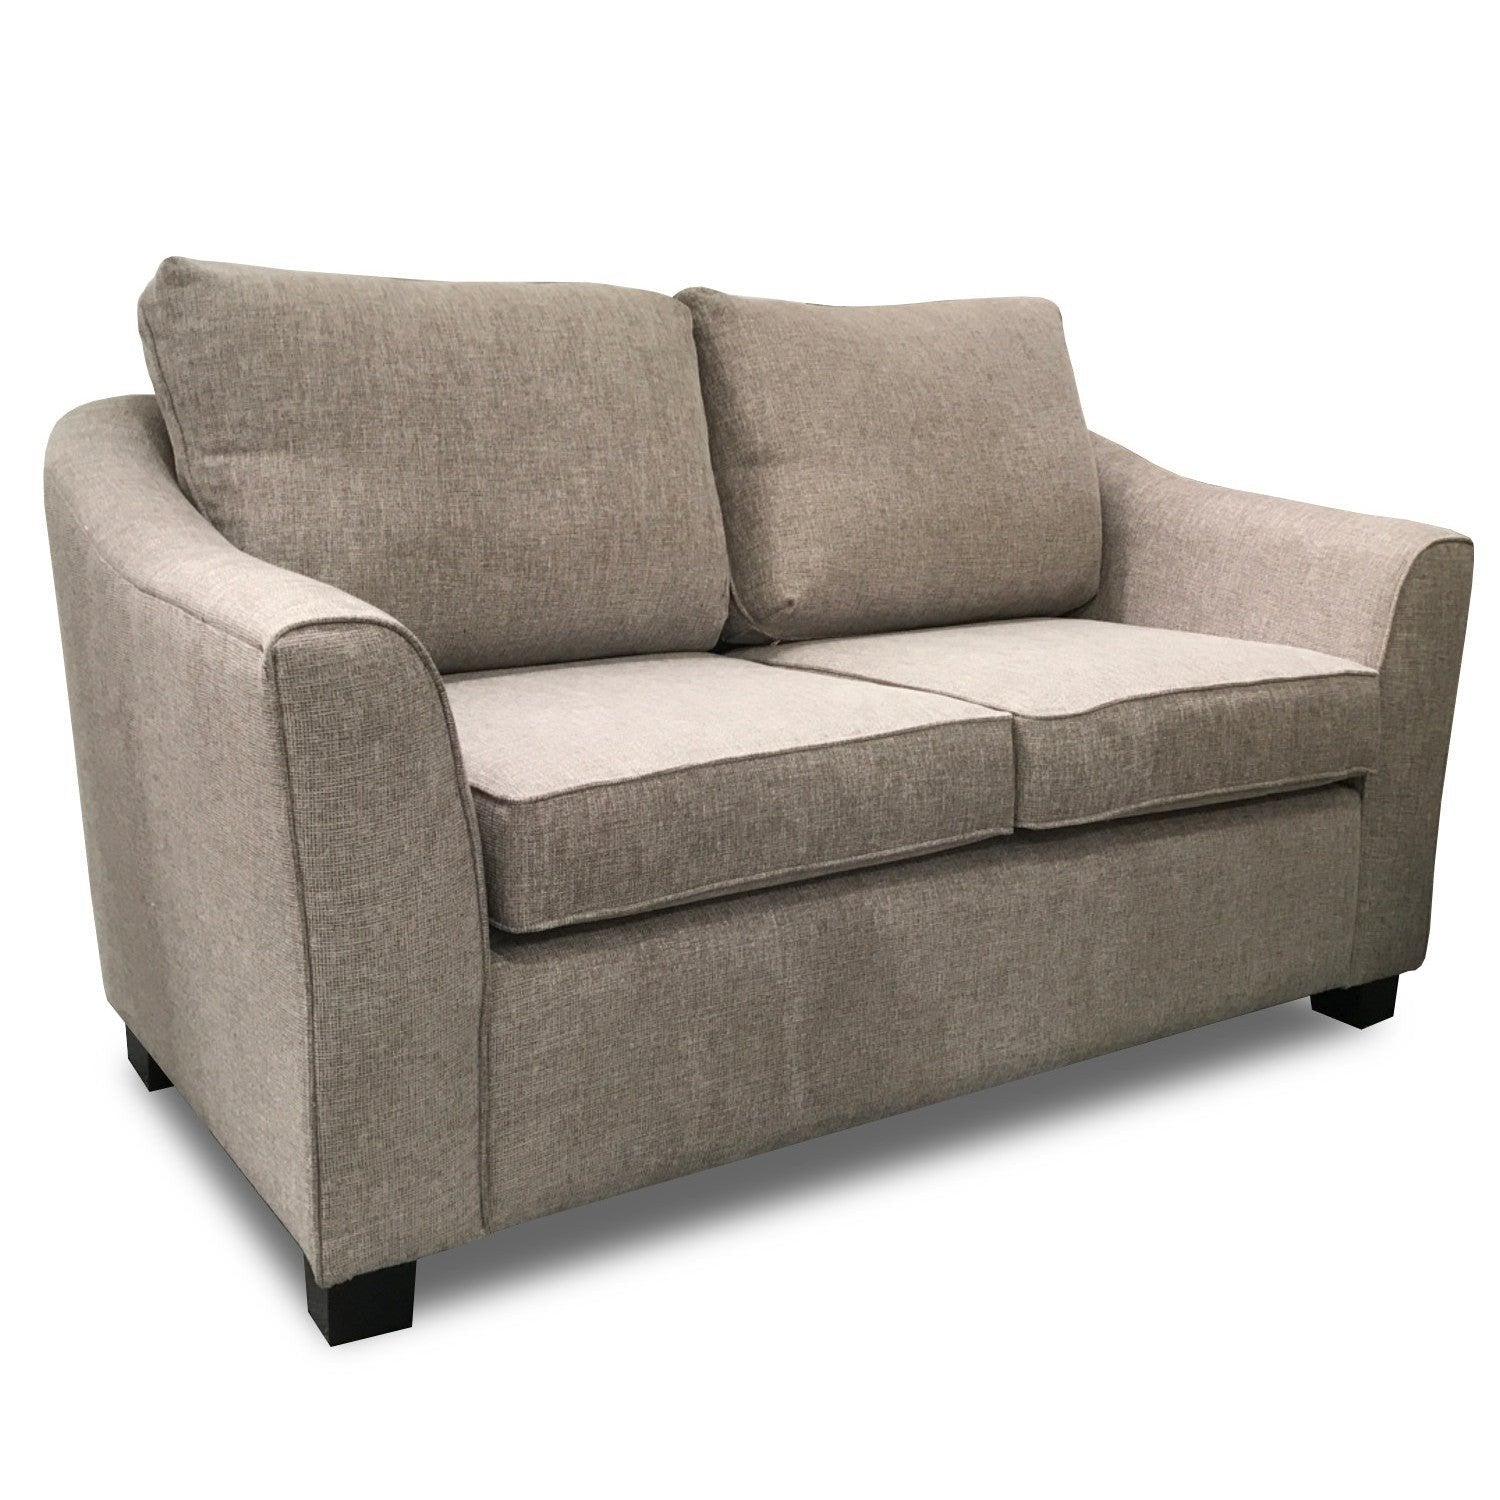 Henly Lounge Suite - 3 Seater & 2 Seater